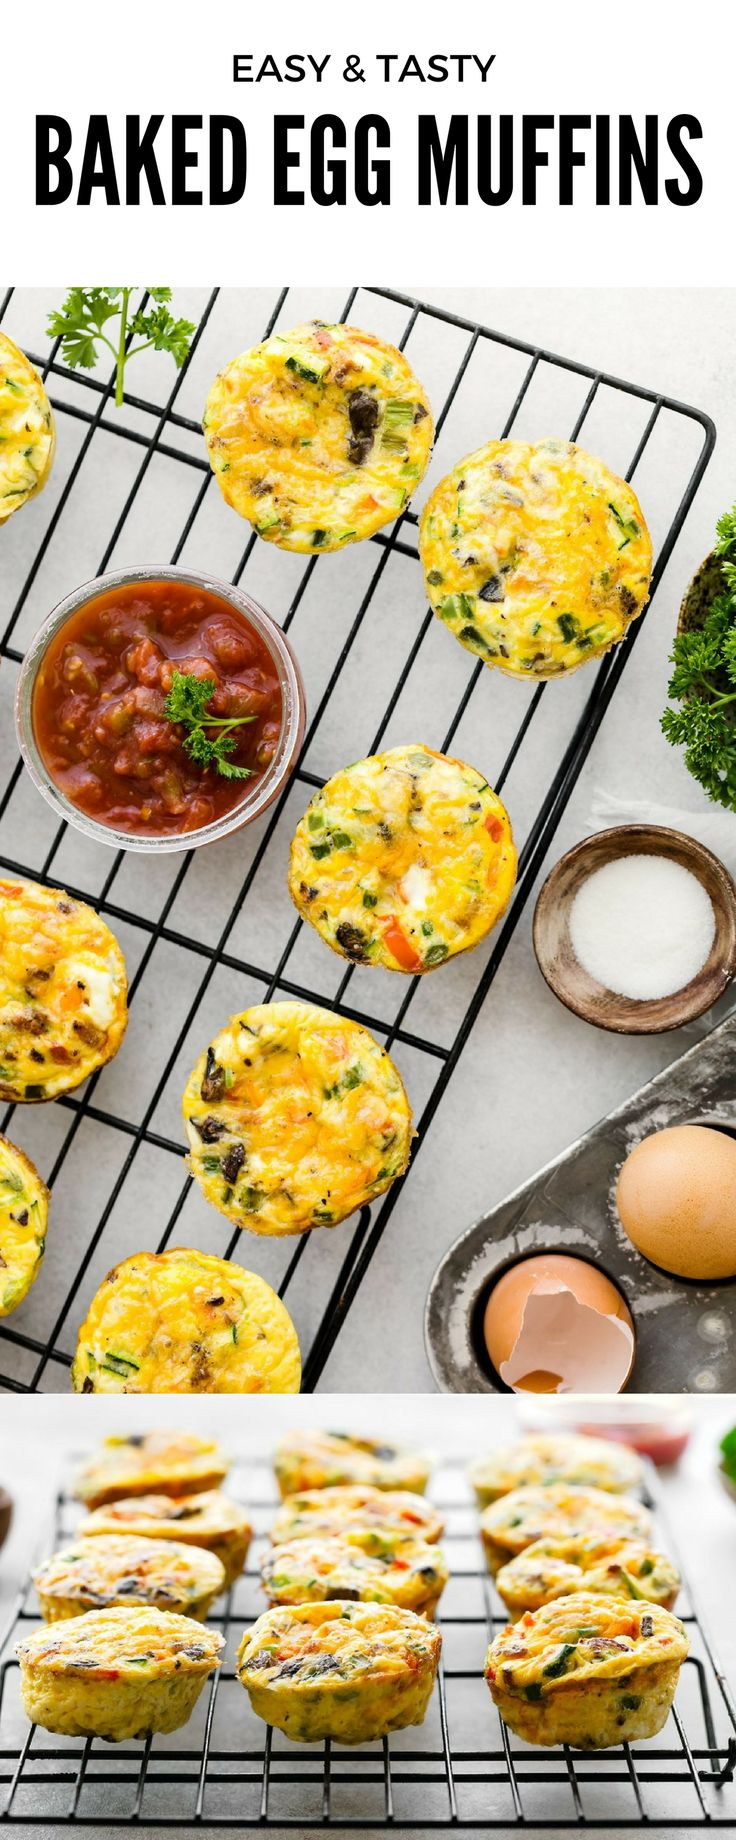 Baked Egg Muffins. Healthy breakfast recipe with vegetables, cheddar, and sausage. Low carb muffins and high in protein. Bake egg cups for 15-20 minutes only. This Baked egg muffins recipe is loaded with healthy fresh vegetables and protein.